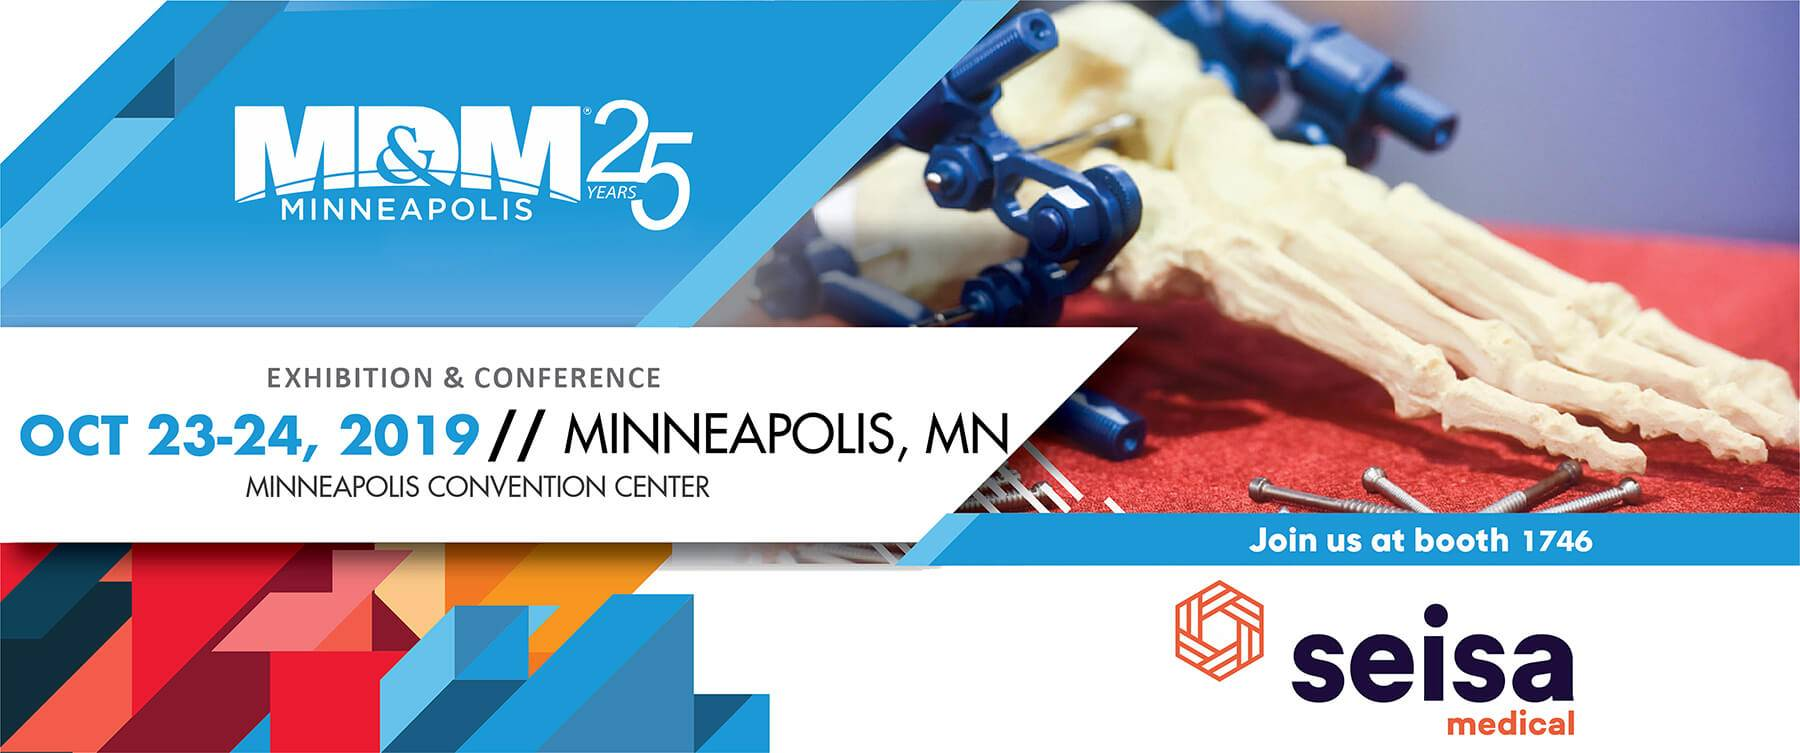 Seisa will be exhibiting at MD&M Minneapolis 2019